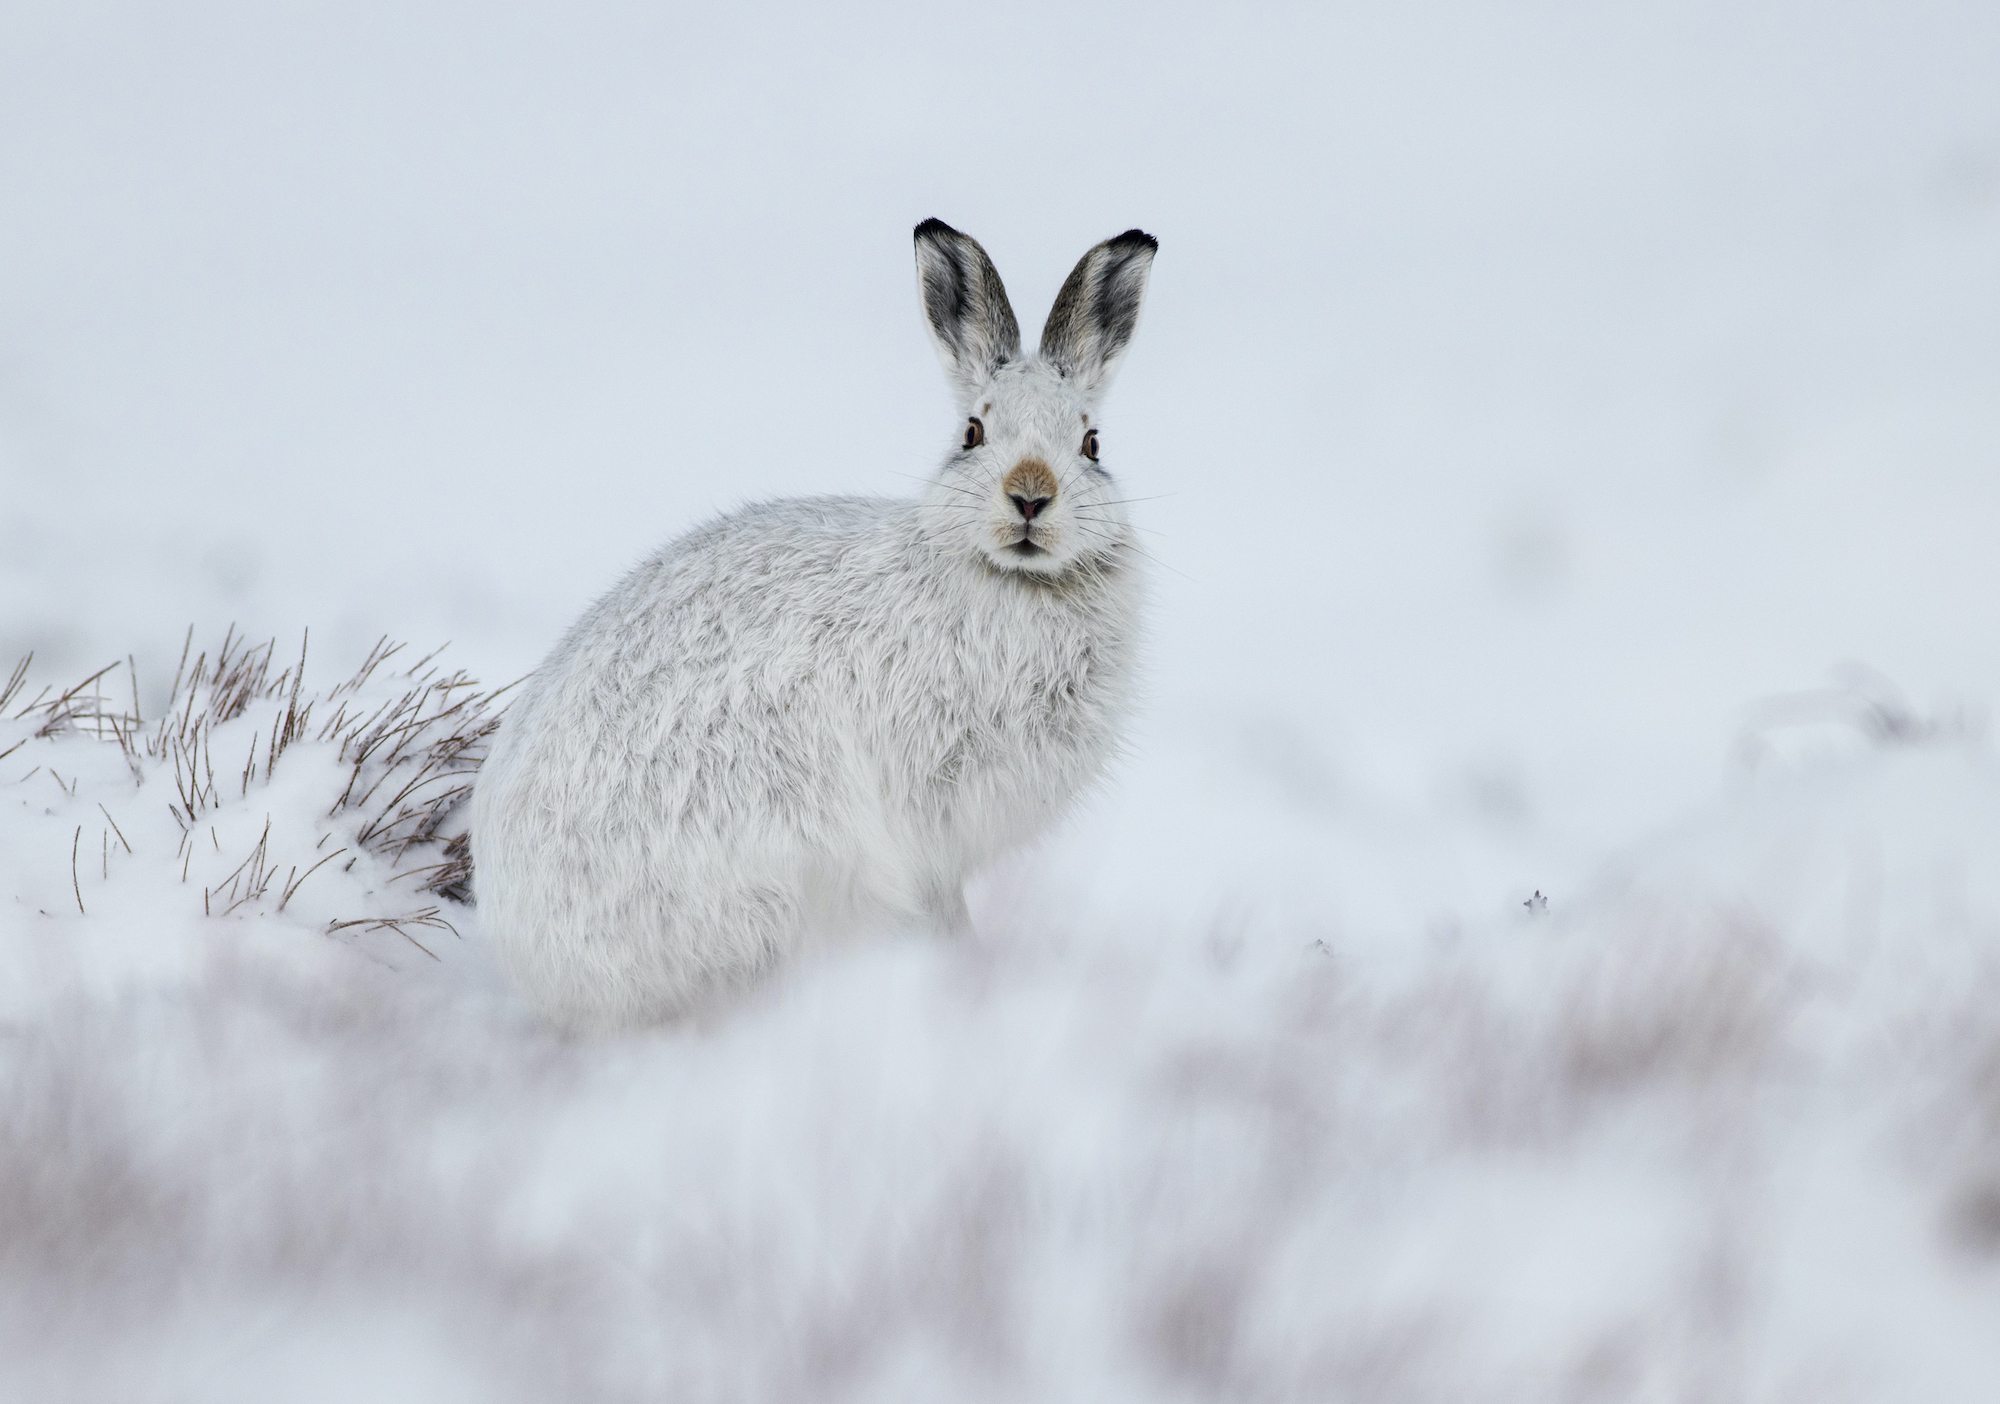 A mountain hare against a white snowy background, Scotland